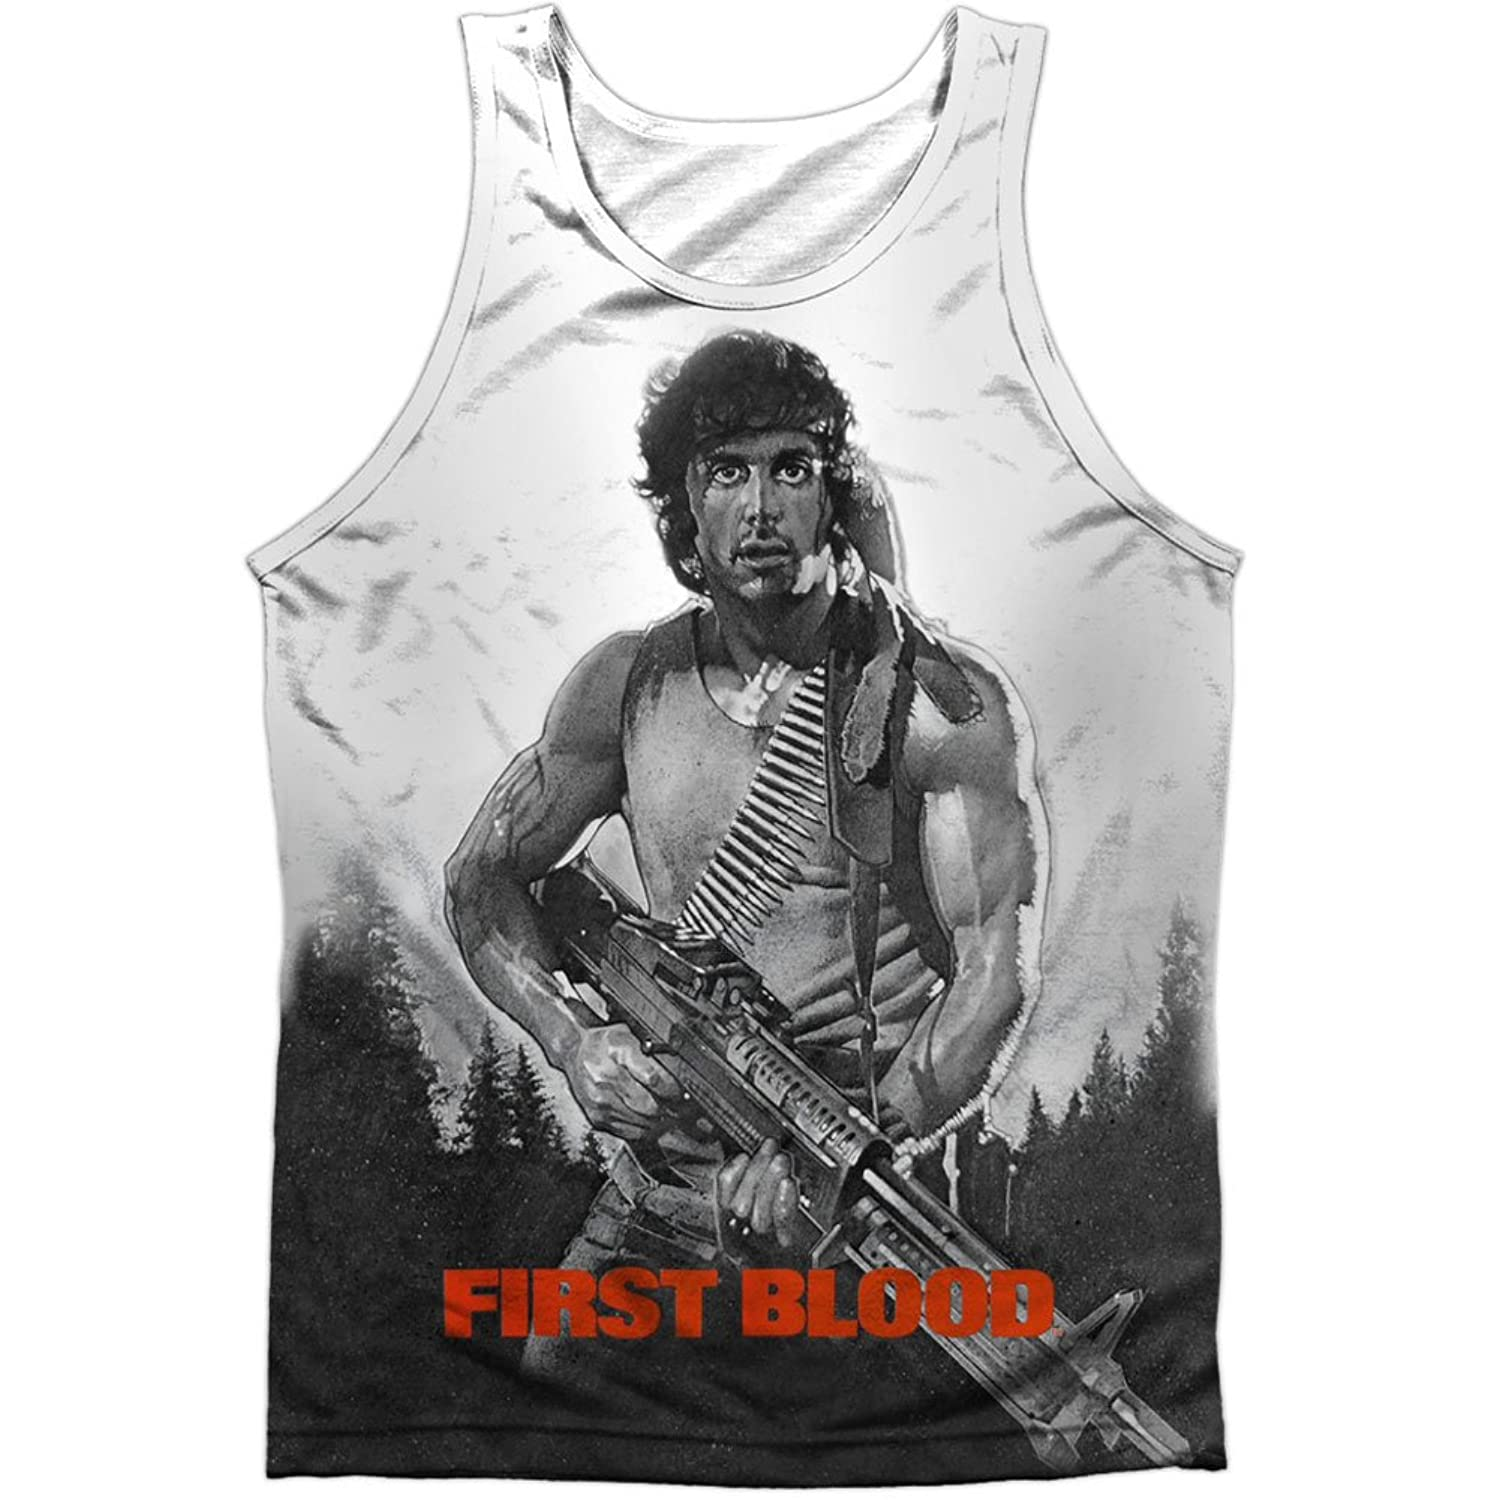 Rambo: First Blood Action Film Theatrical Poster Front Print Tank Top Shirt